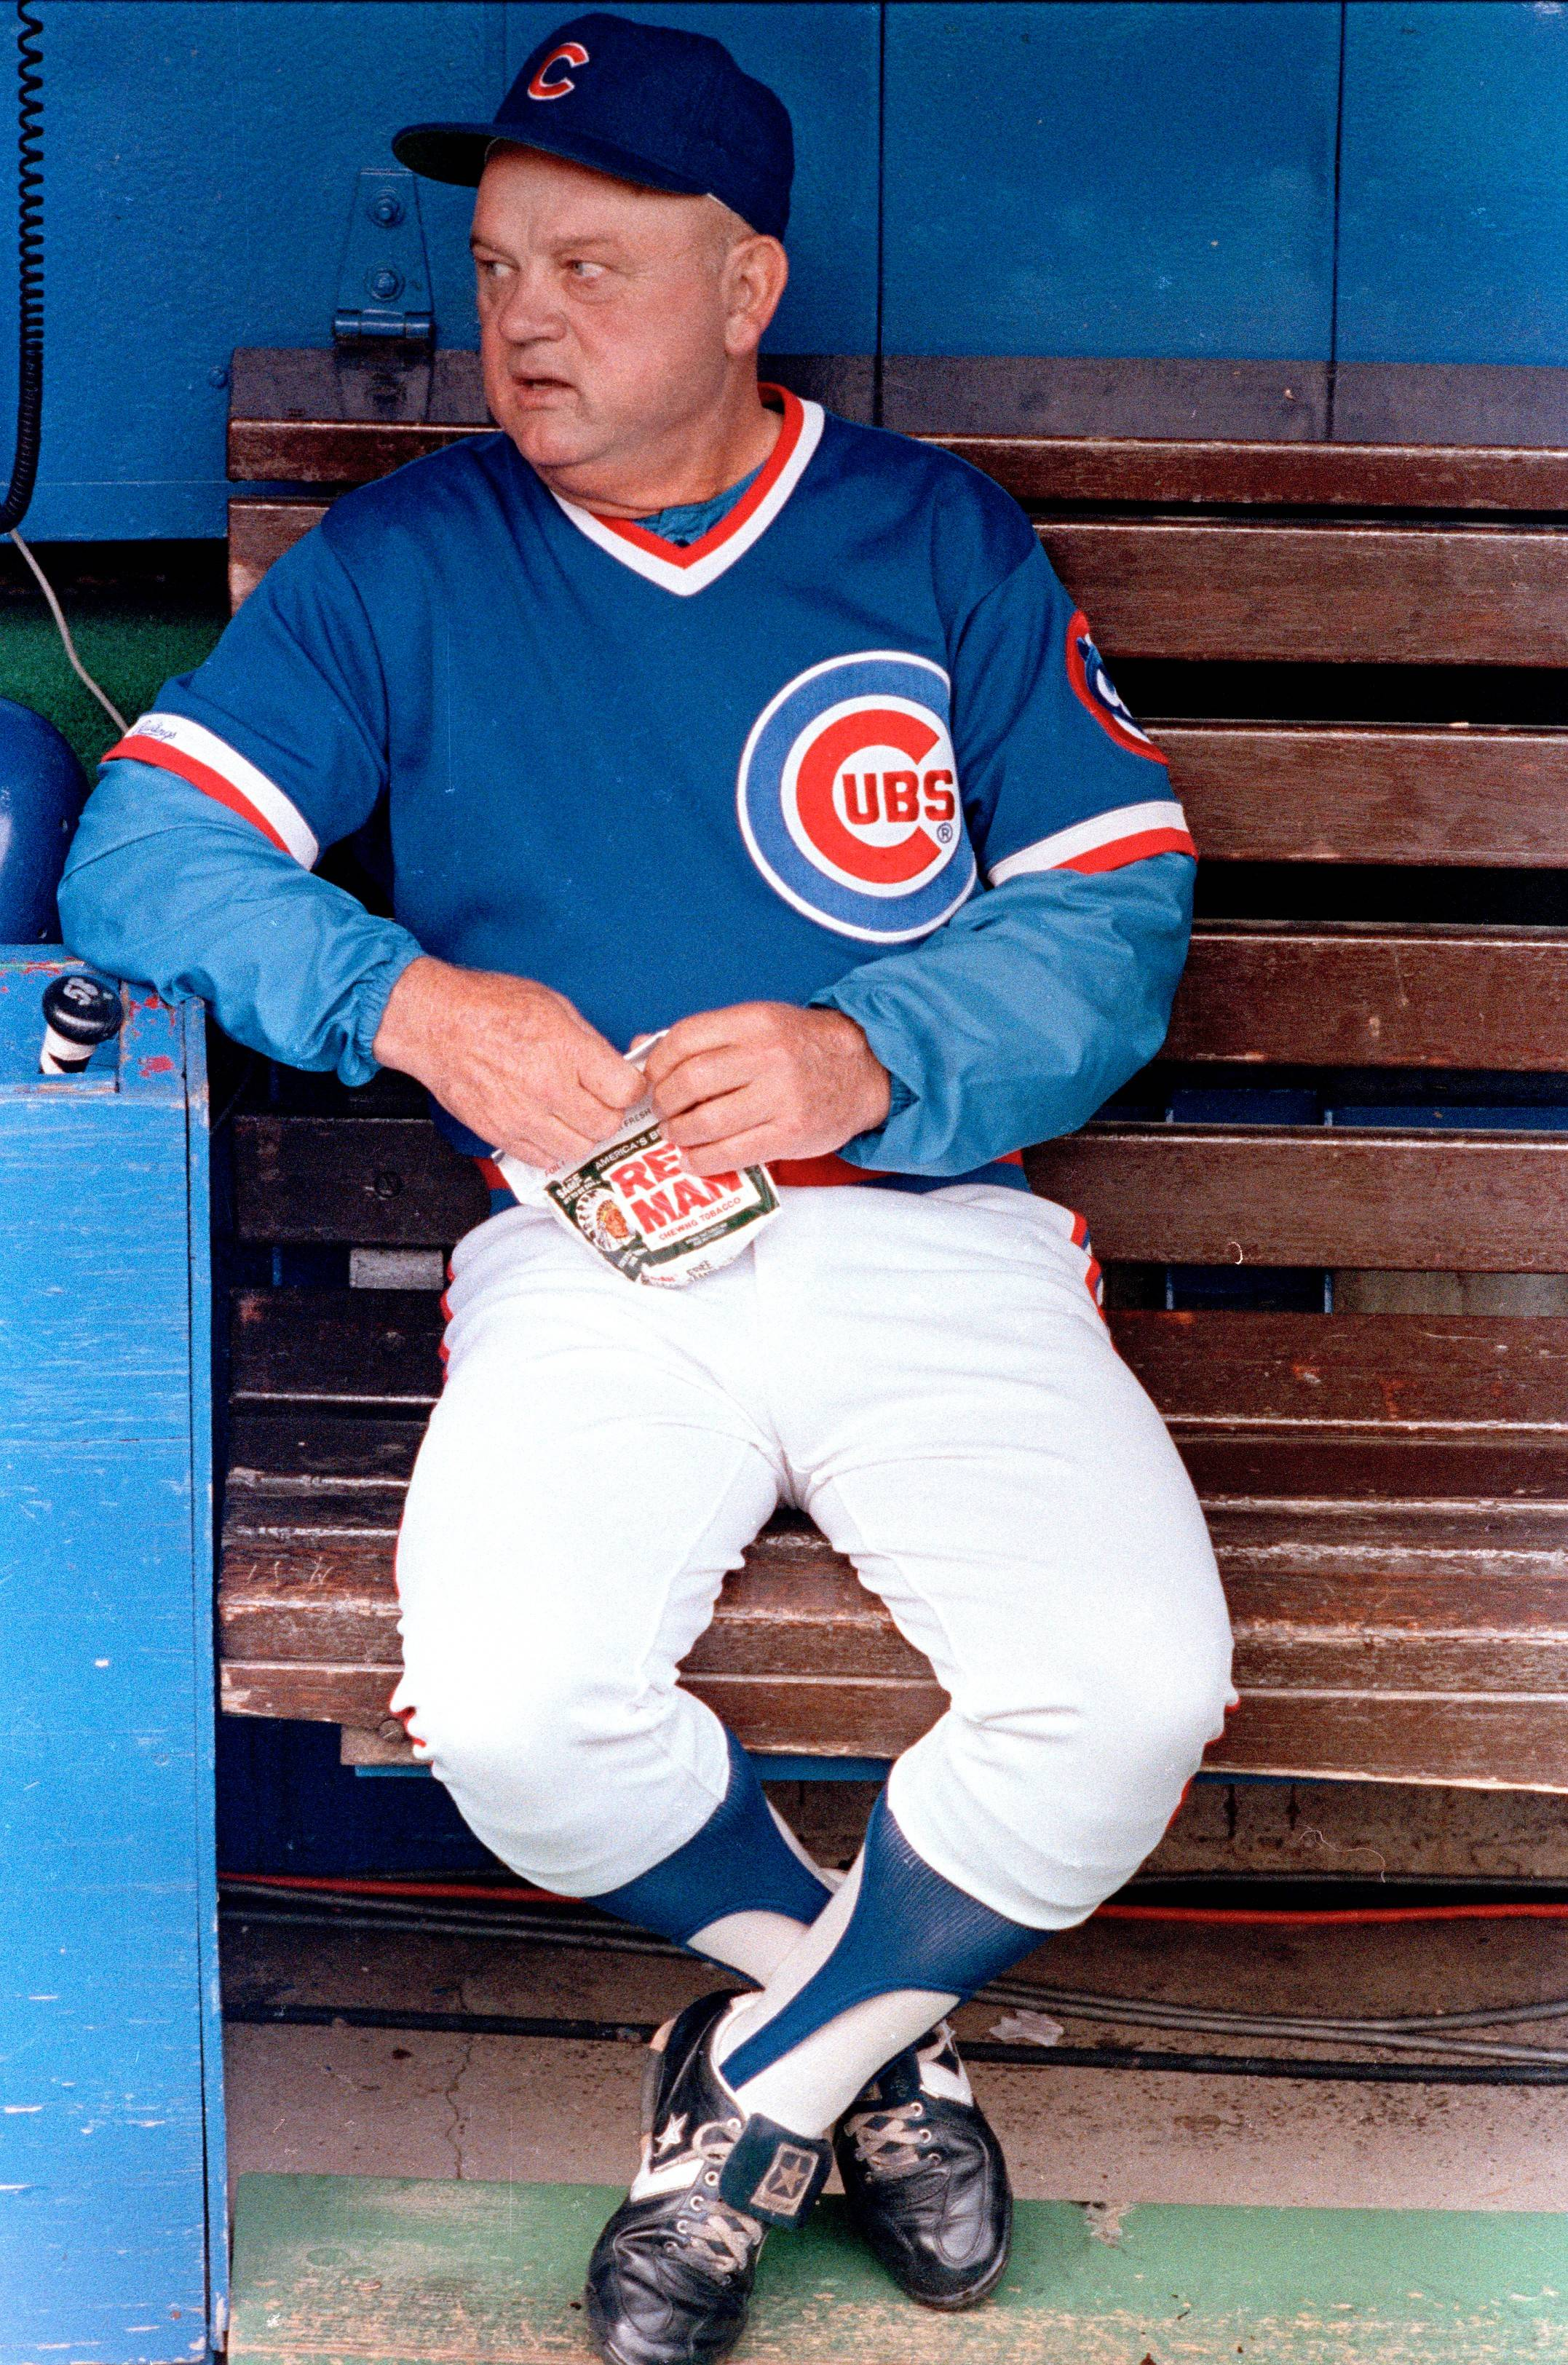 Cubs manager Don Zimmer sits in the dugout before a game against the St. Louis Cardinals in St. Louis in 1989. Zimmer died Wednesday in Florida.